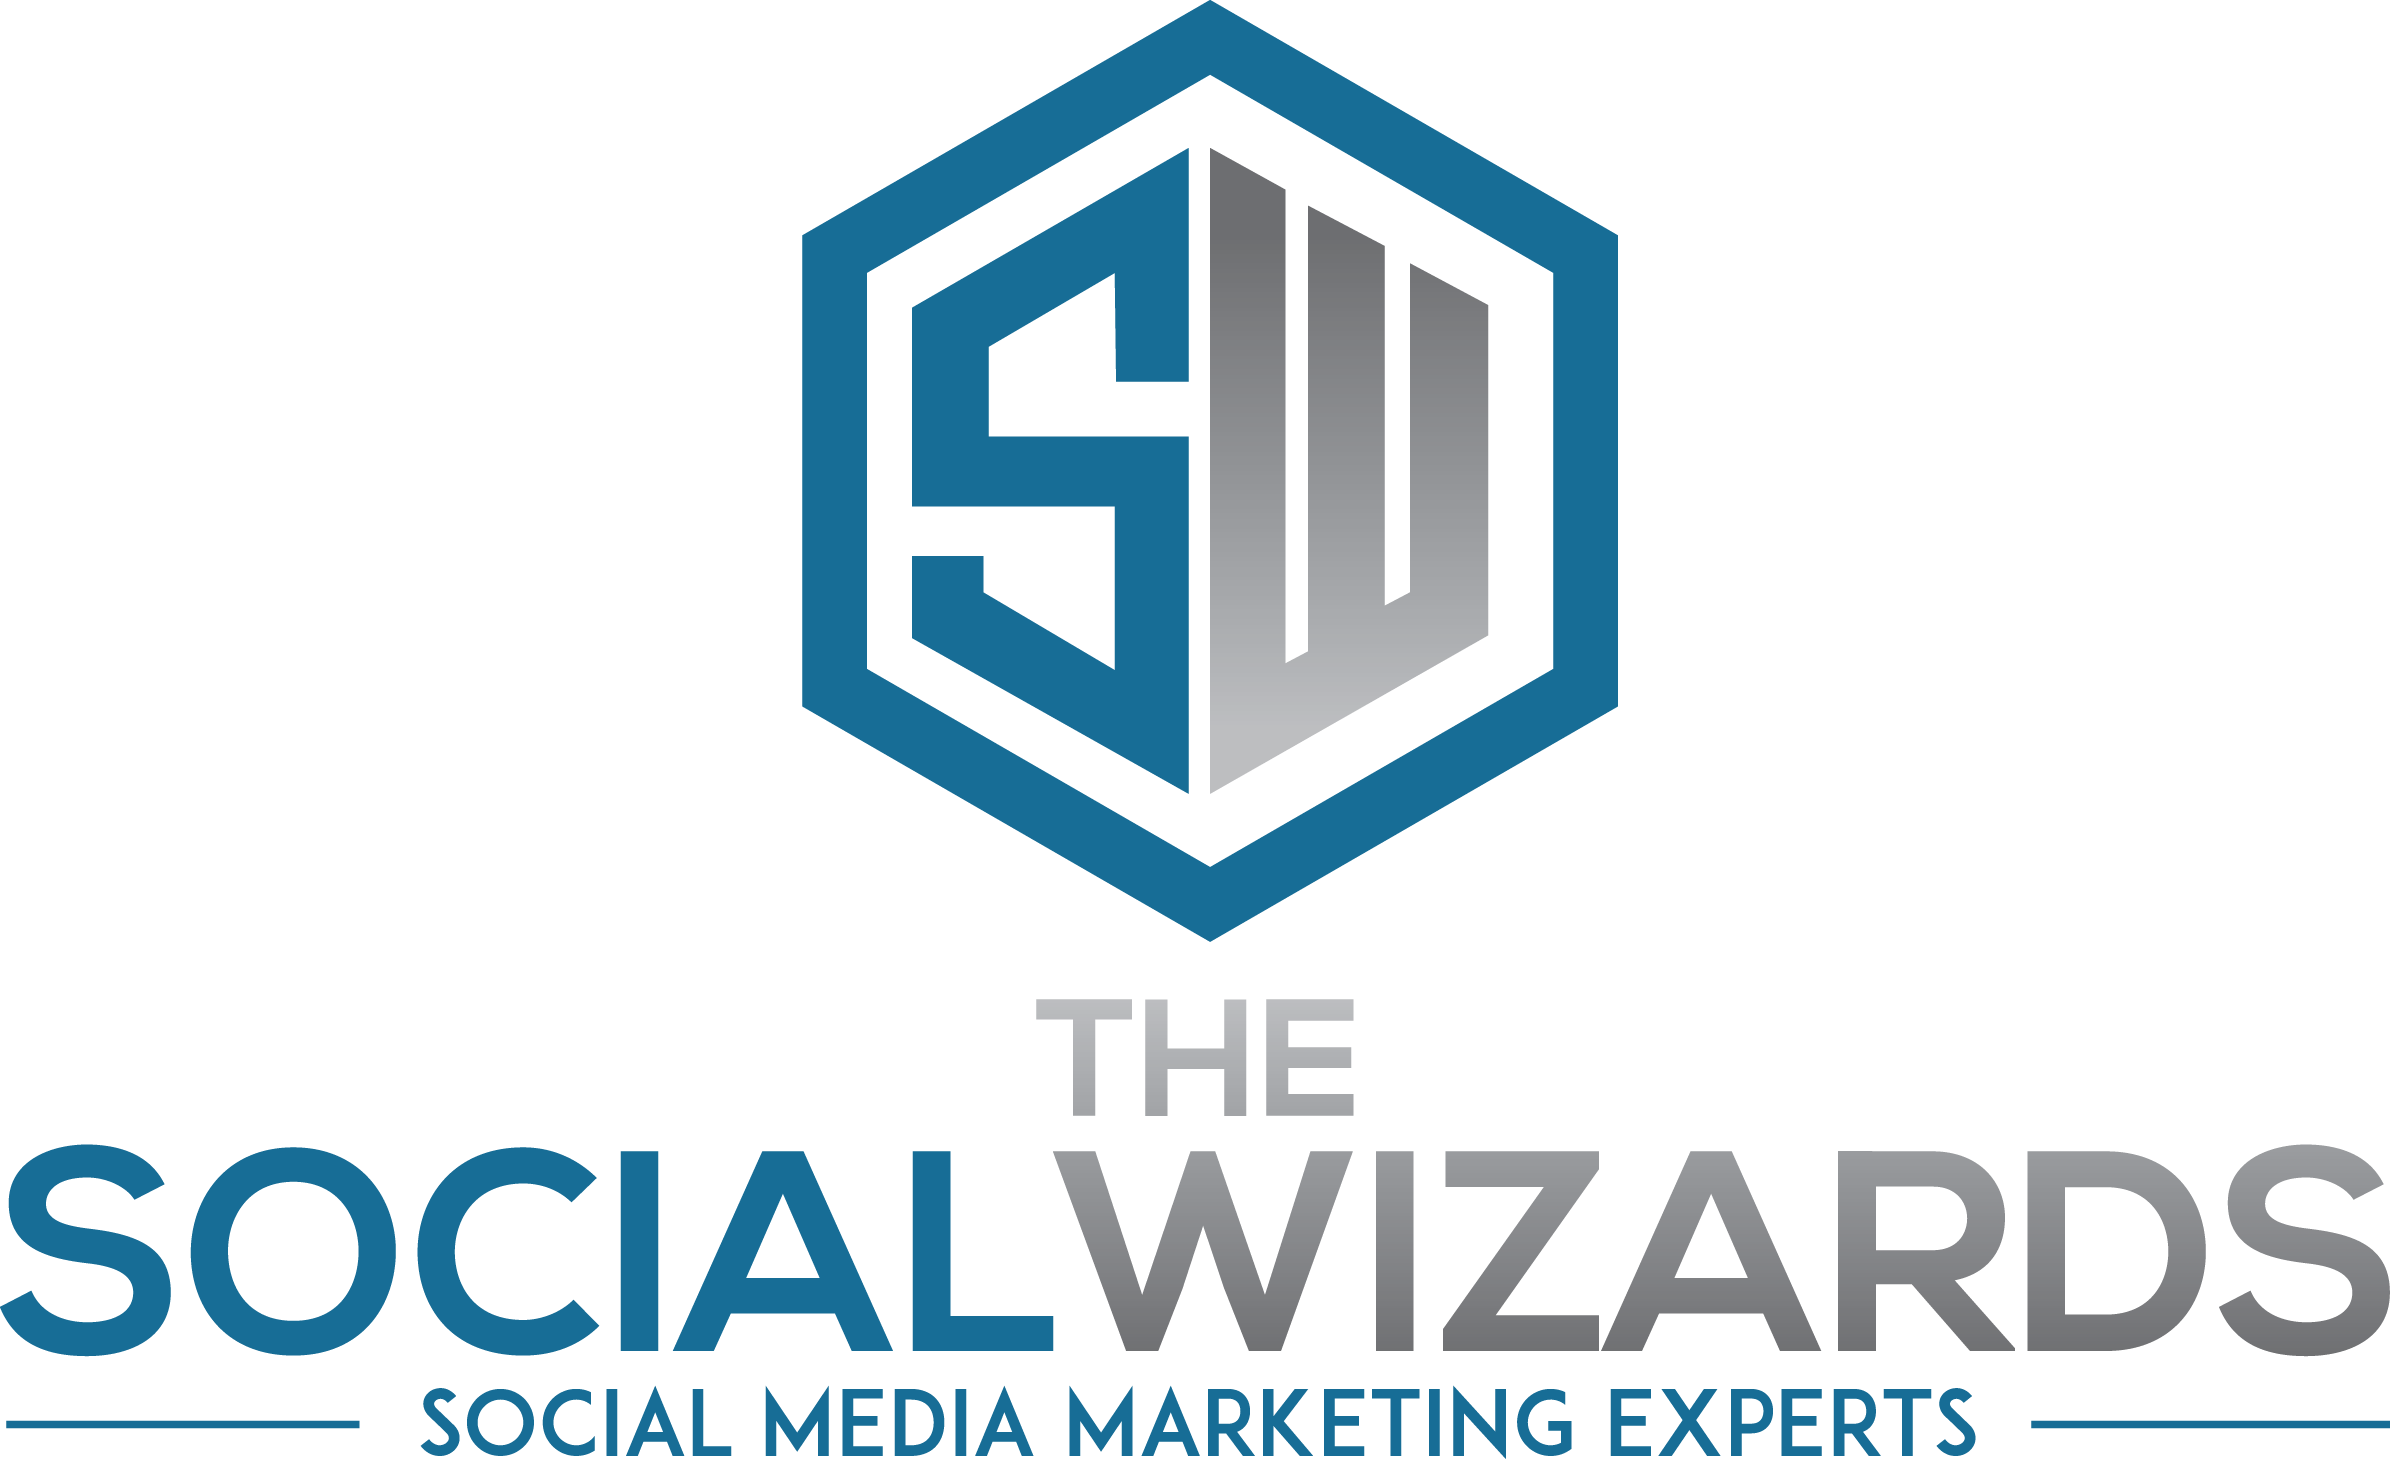 The Social Wizards